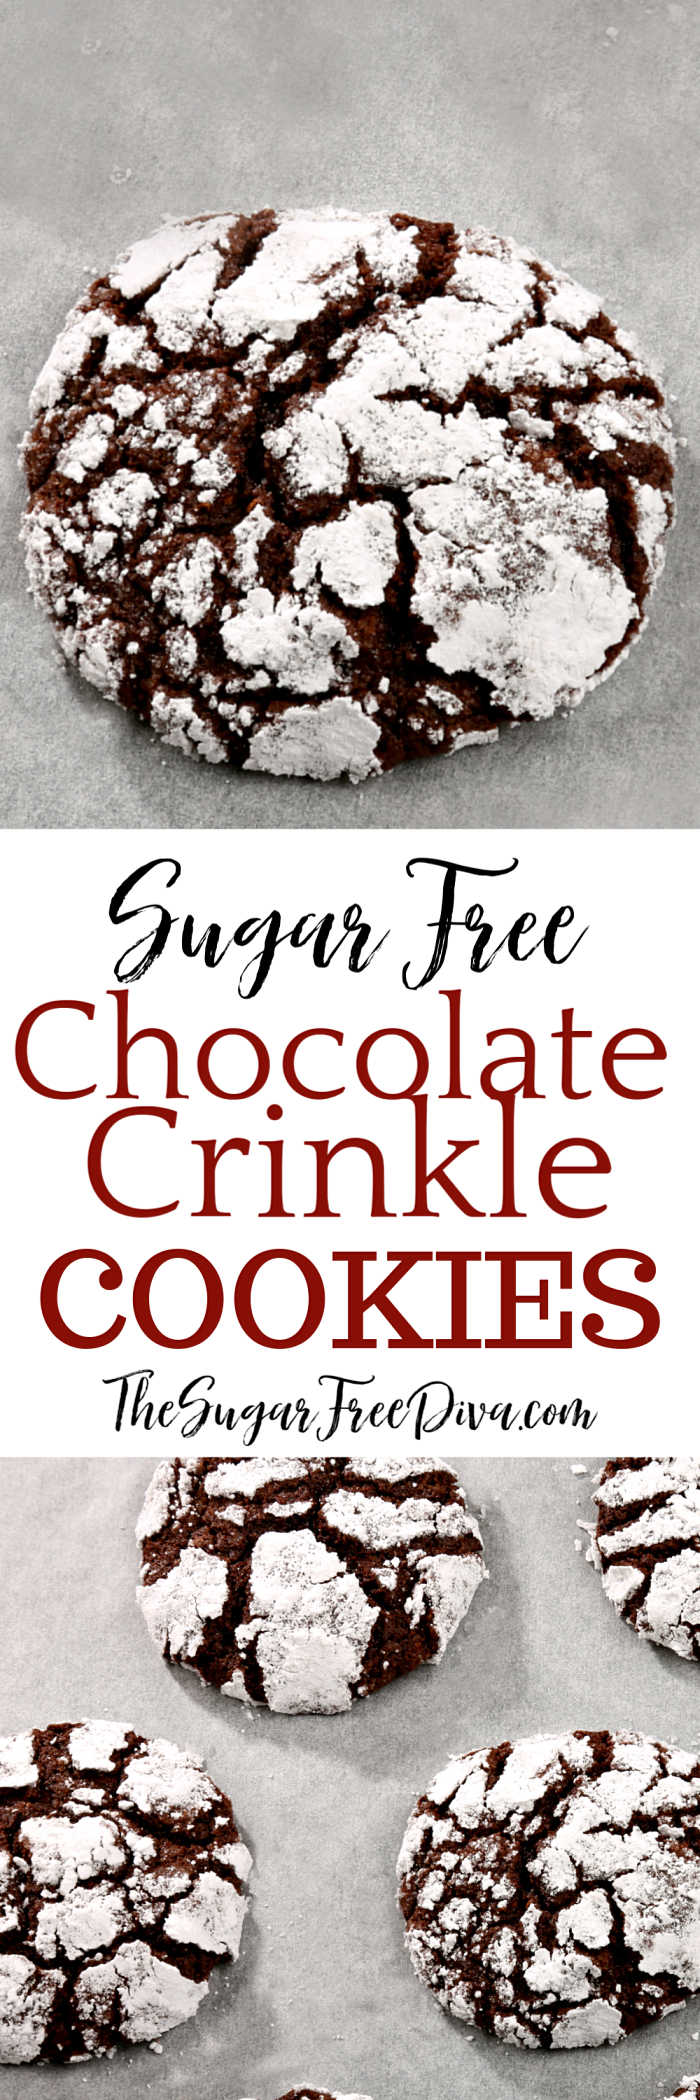 Sugar Free Chocolate Crinkle Cookies